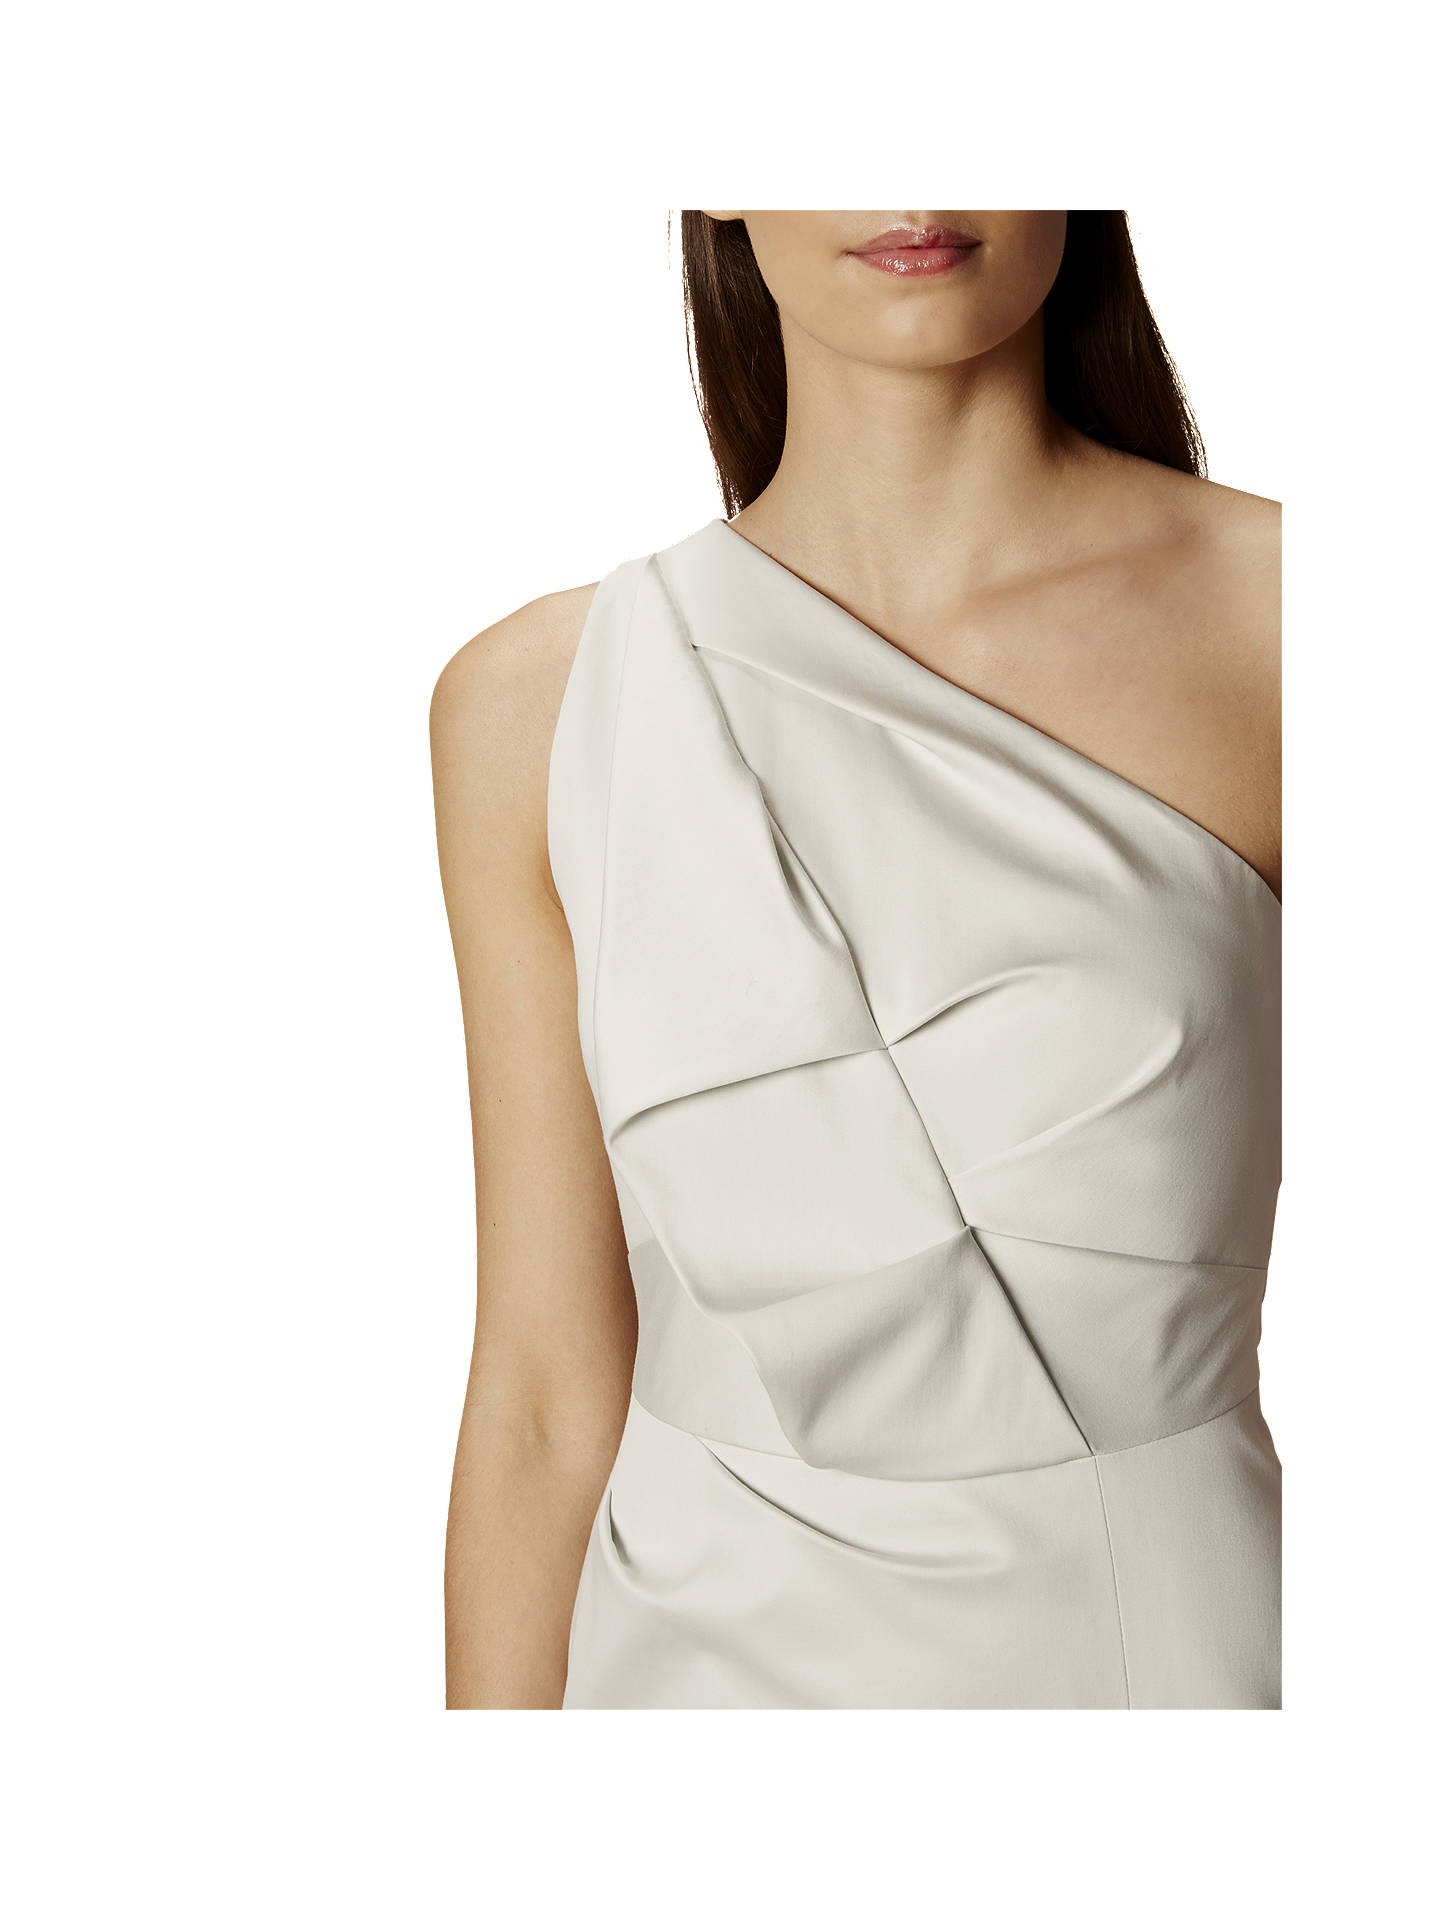 0d81ddeafd7a Buy Karen Millen One Shoulder Folded Dress, Pale Grey, 6 Online at  johnlewis.